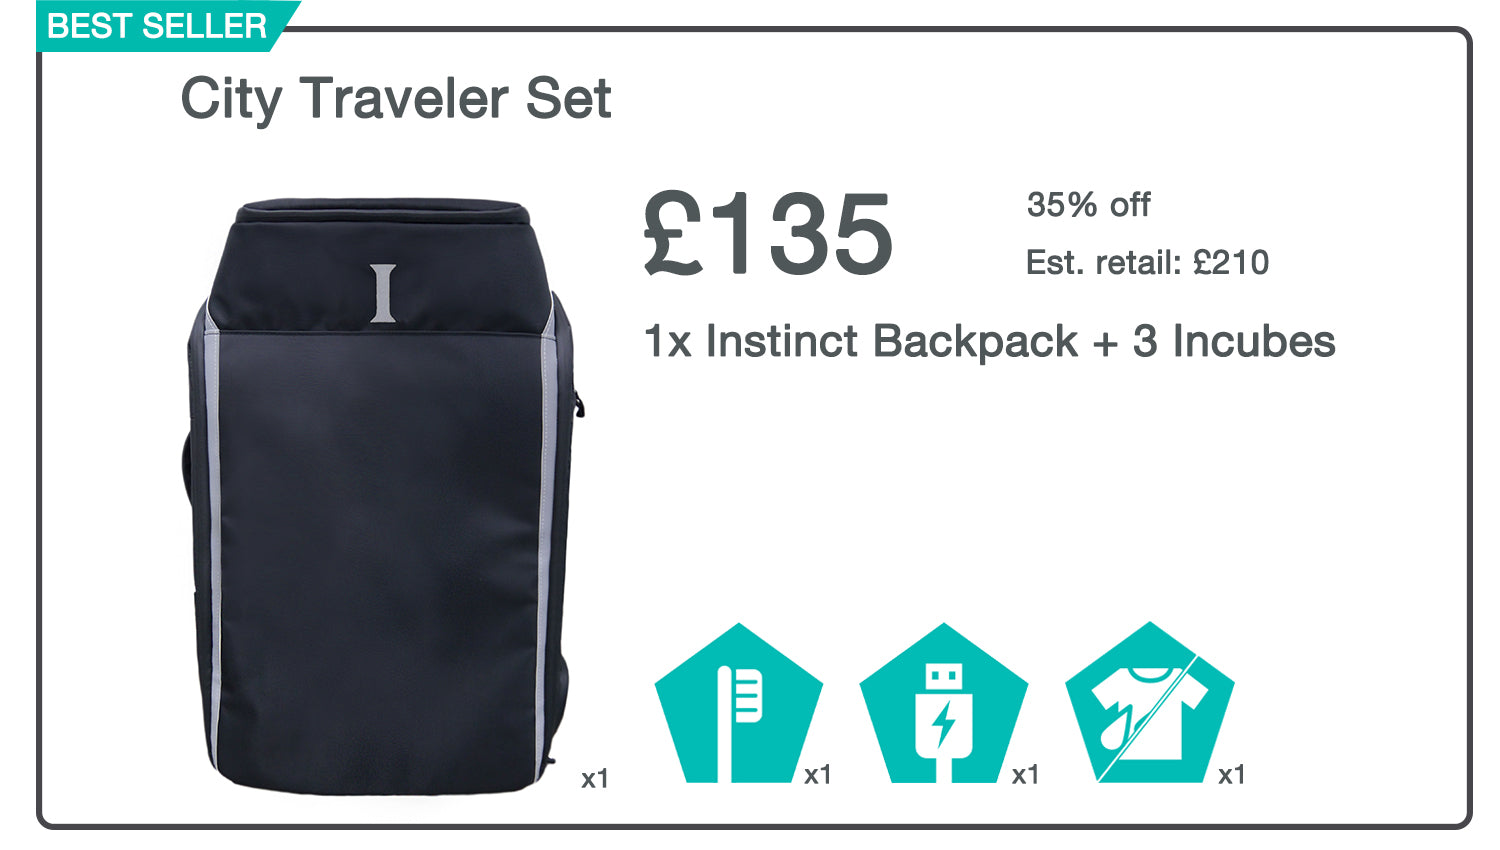 City Traveler Set